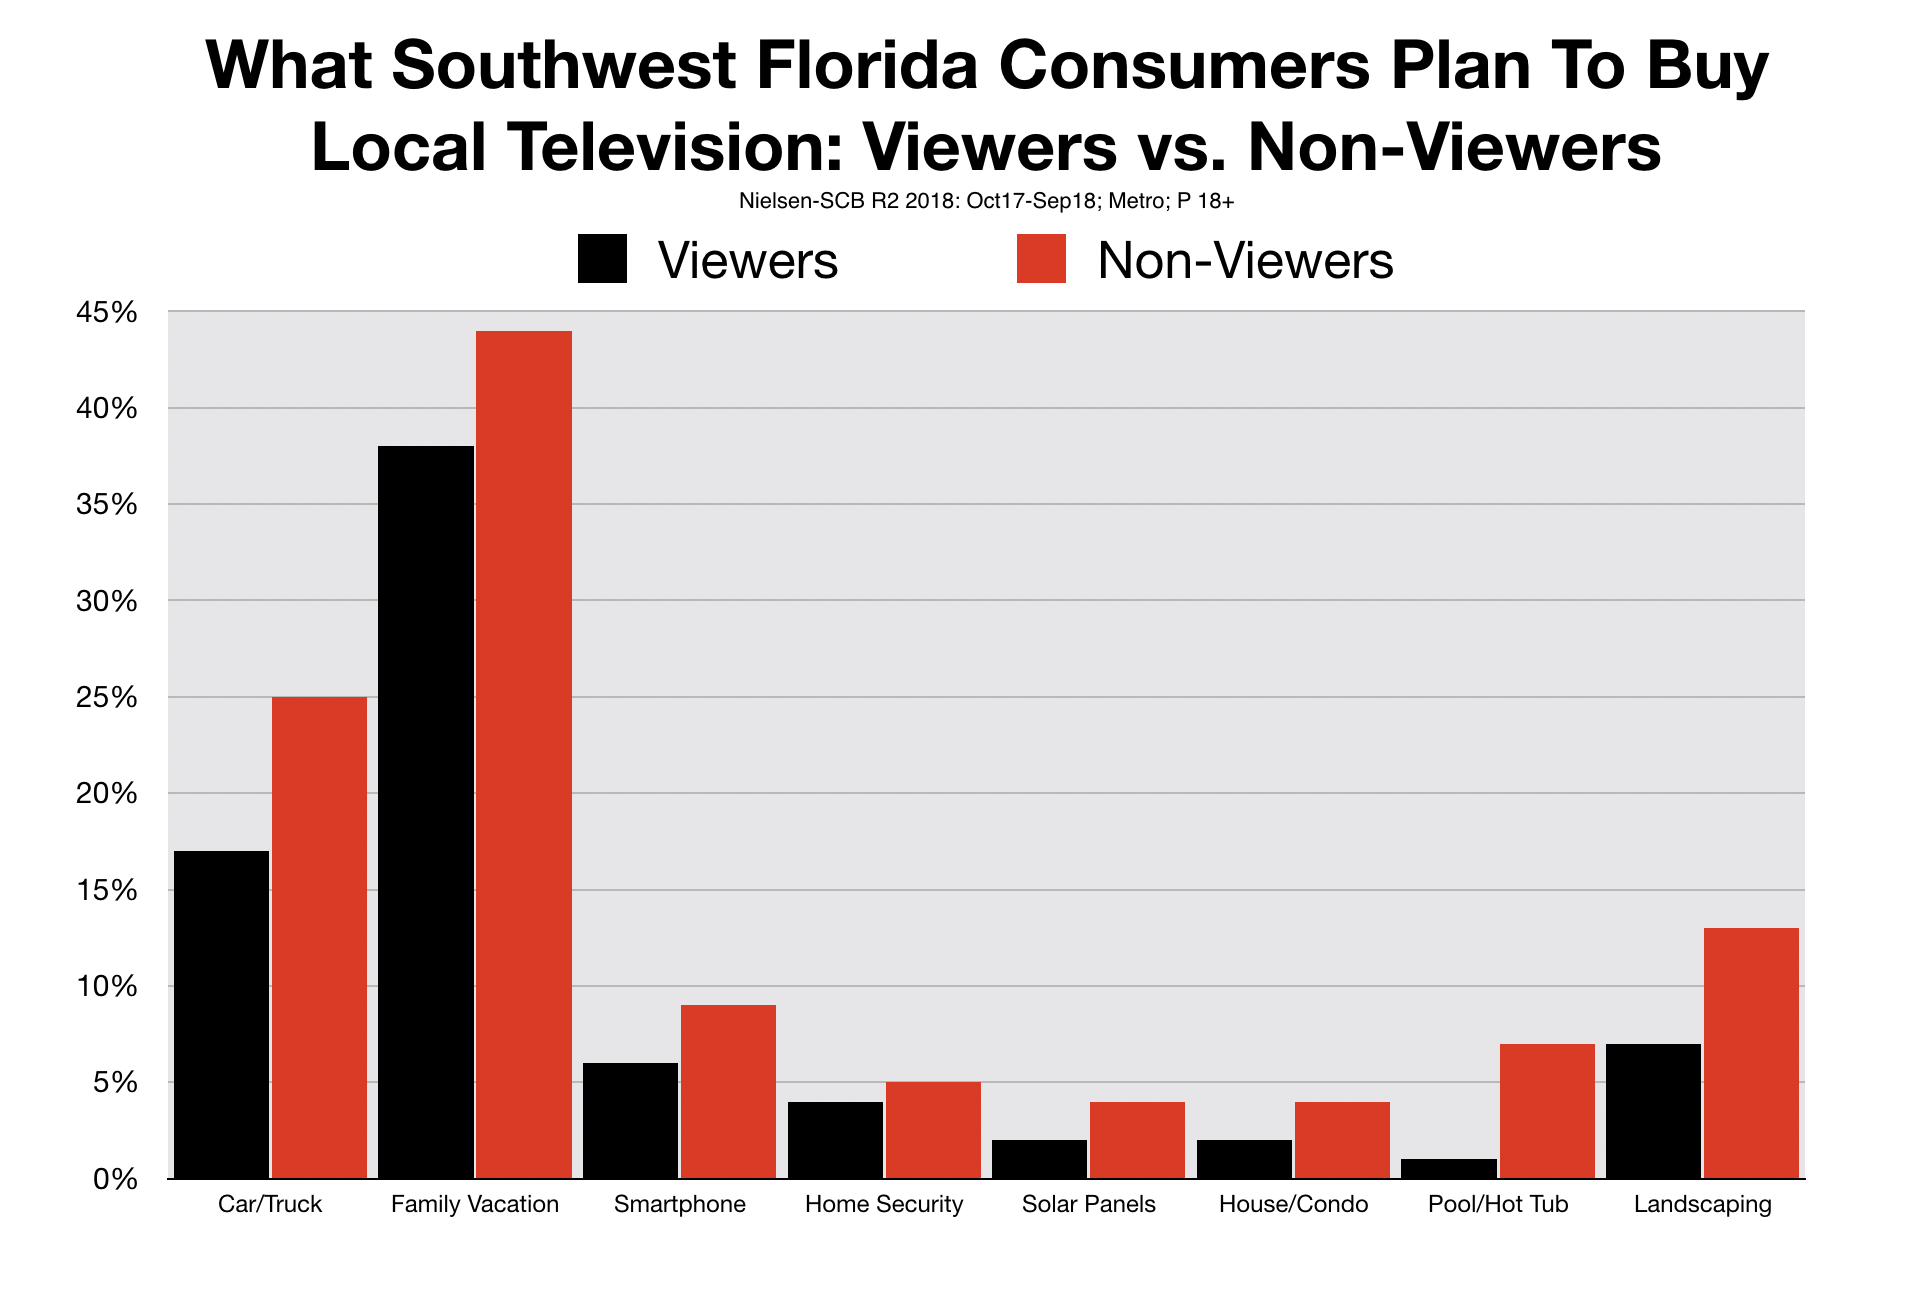 Southwest Florida Media Reach By Product Category